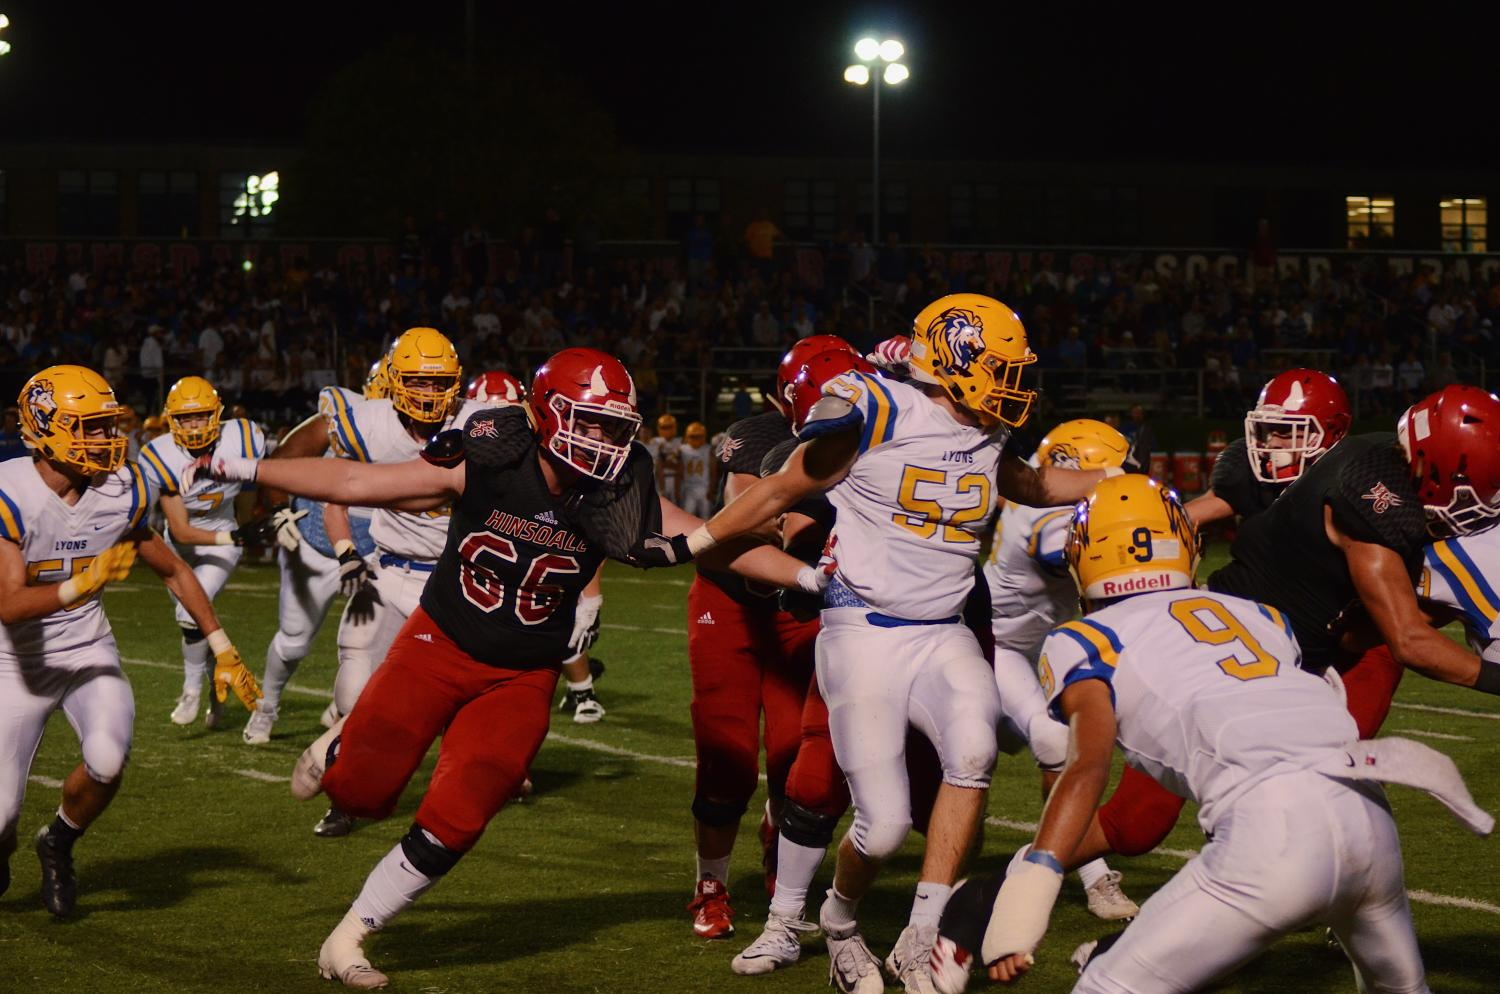 With all the tackling and intense plays that occur each football game, it's no surprise that many Red Devil players are out due to injuries.